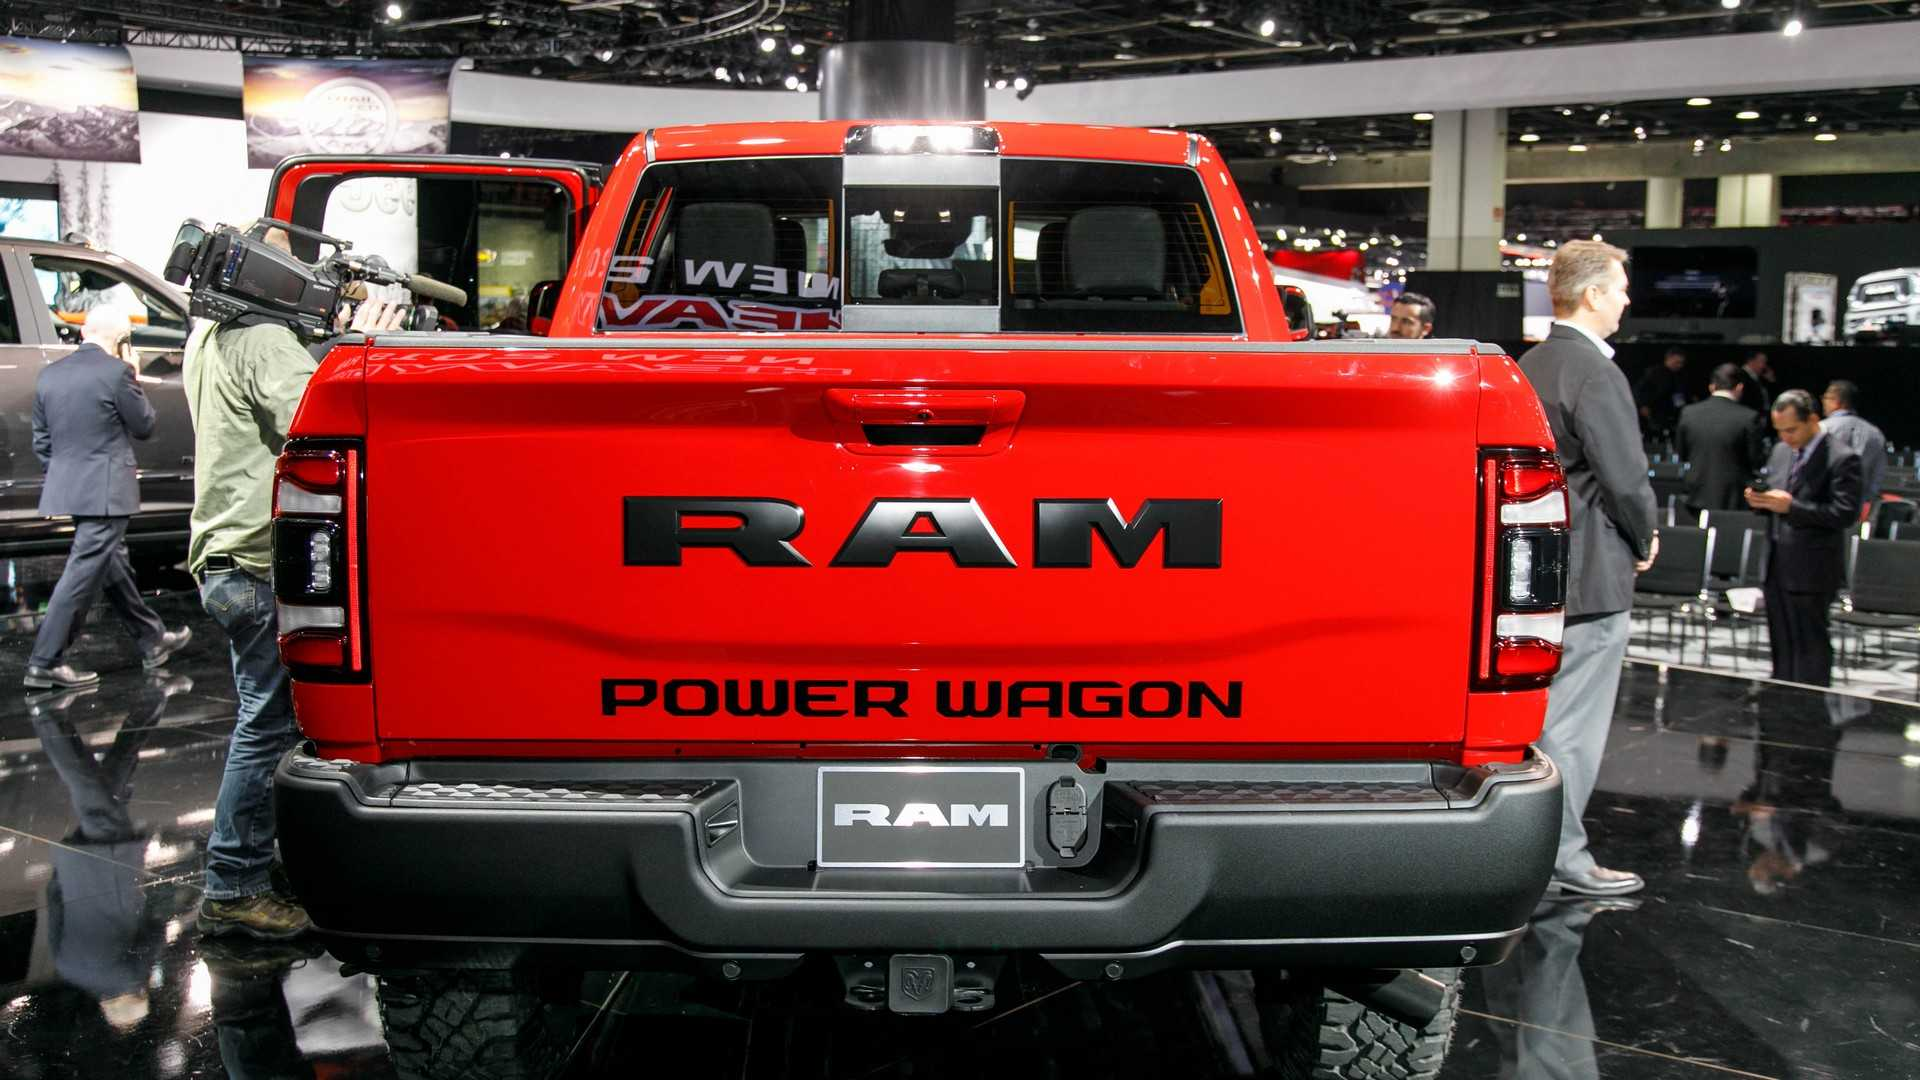 2019 Ram HD Debuts With 1,000 LB-FT Of Torque, Tons Of Tech